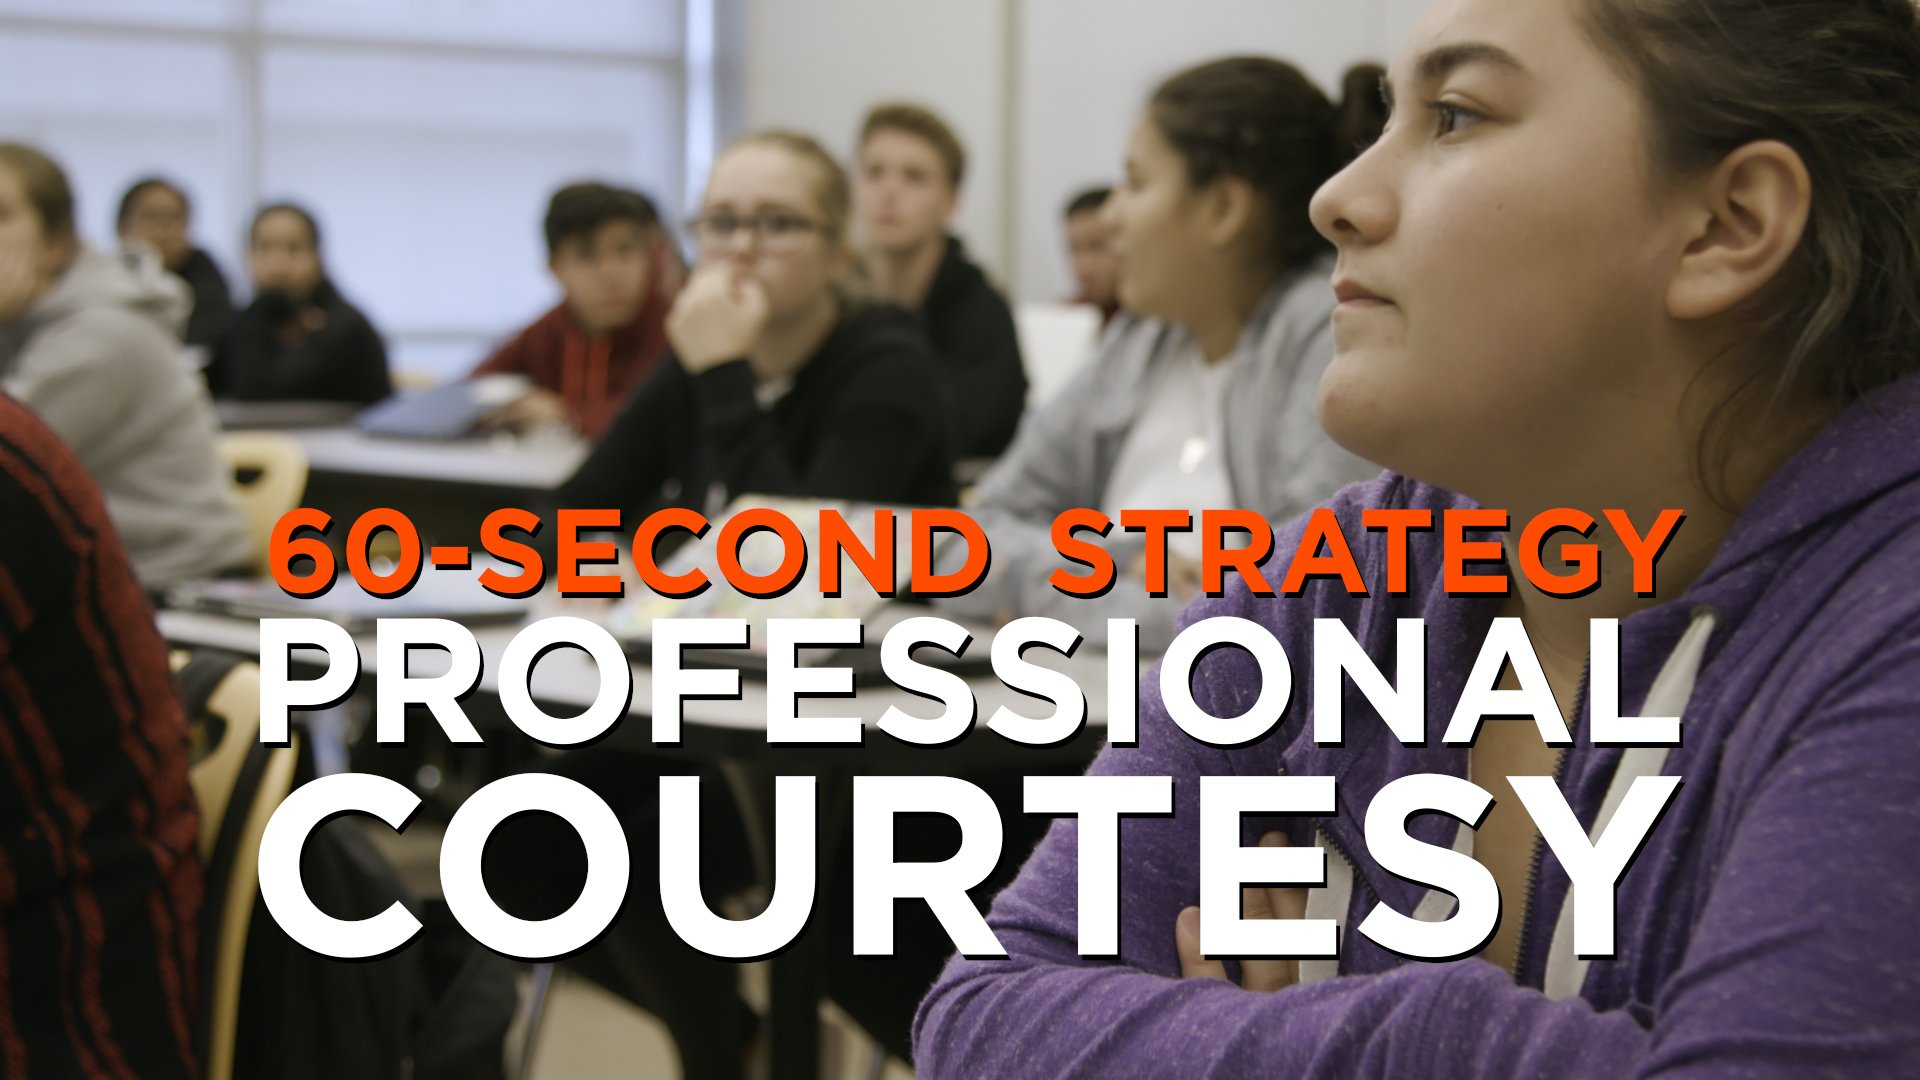 """Computers at half-mast. Headphones out. Undivided attention. In """"professional courtesy,"""" students are fully present with their teachers. https://t.co/GTi0Q60edP"""